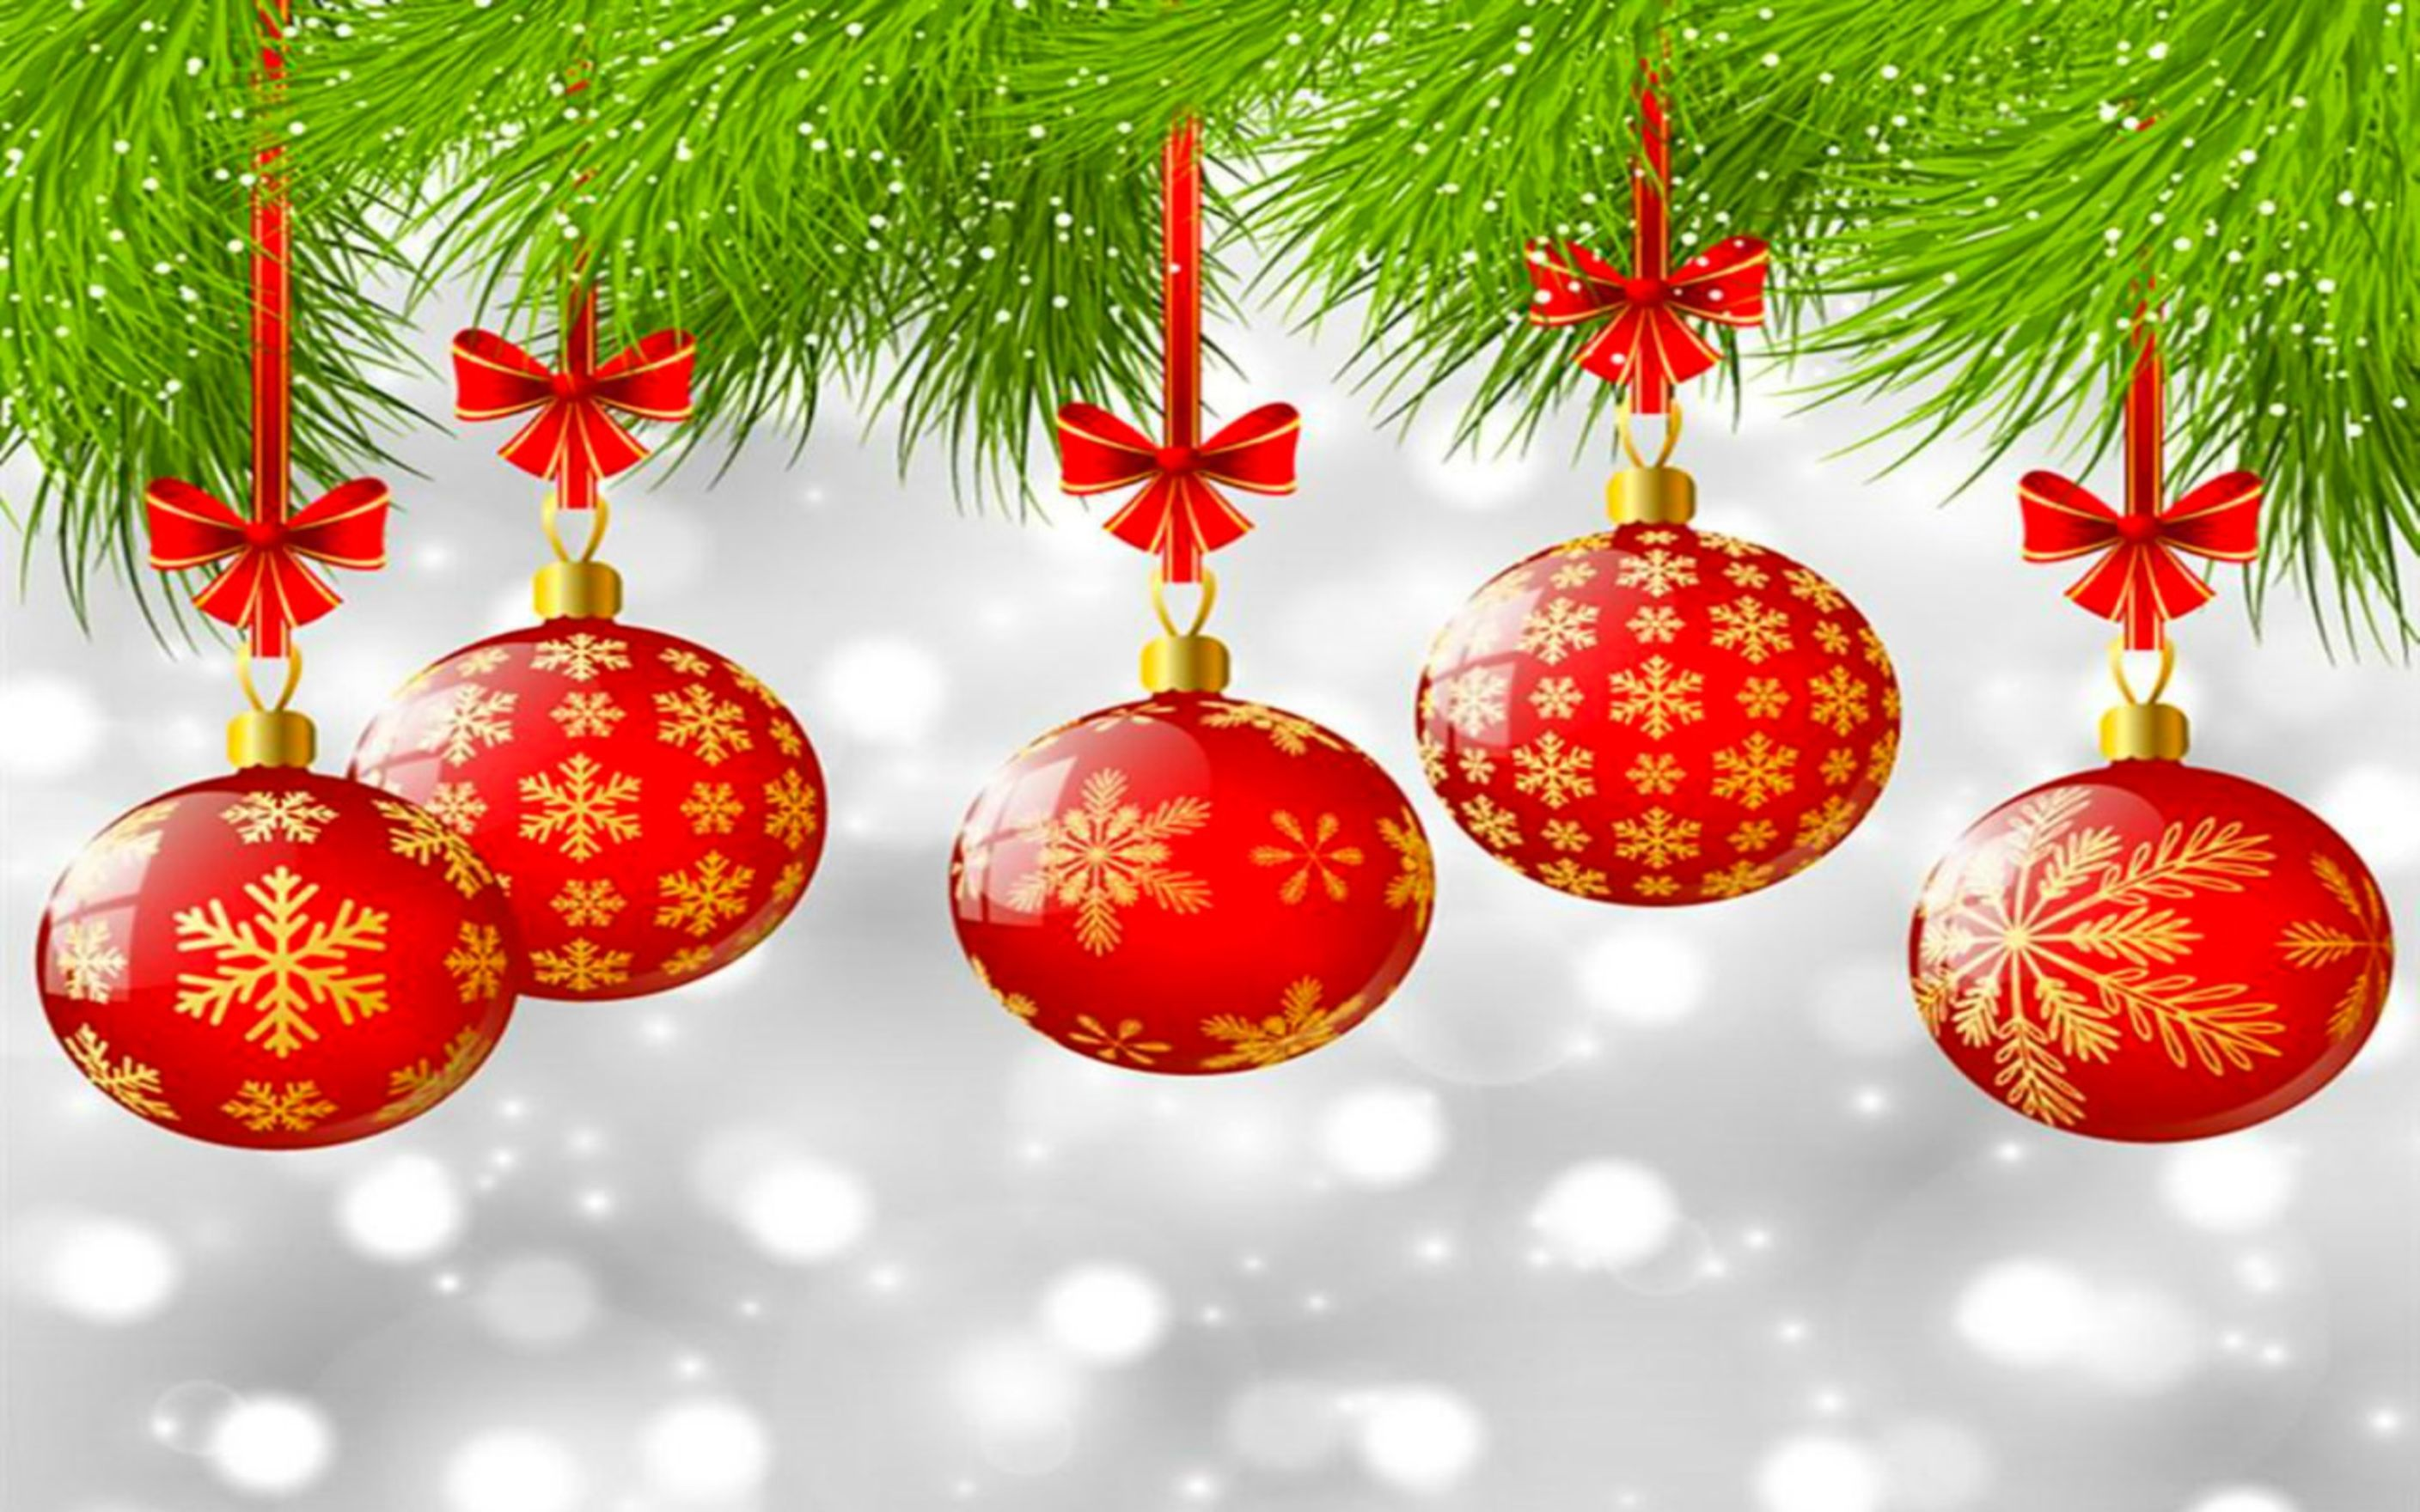 Download free HD Christmas Ornaments Red Wallpaper, image